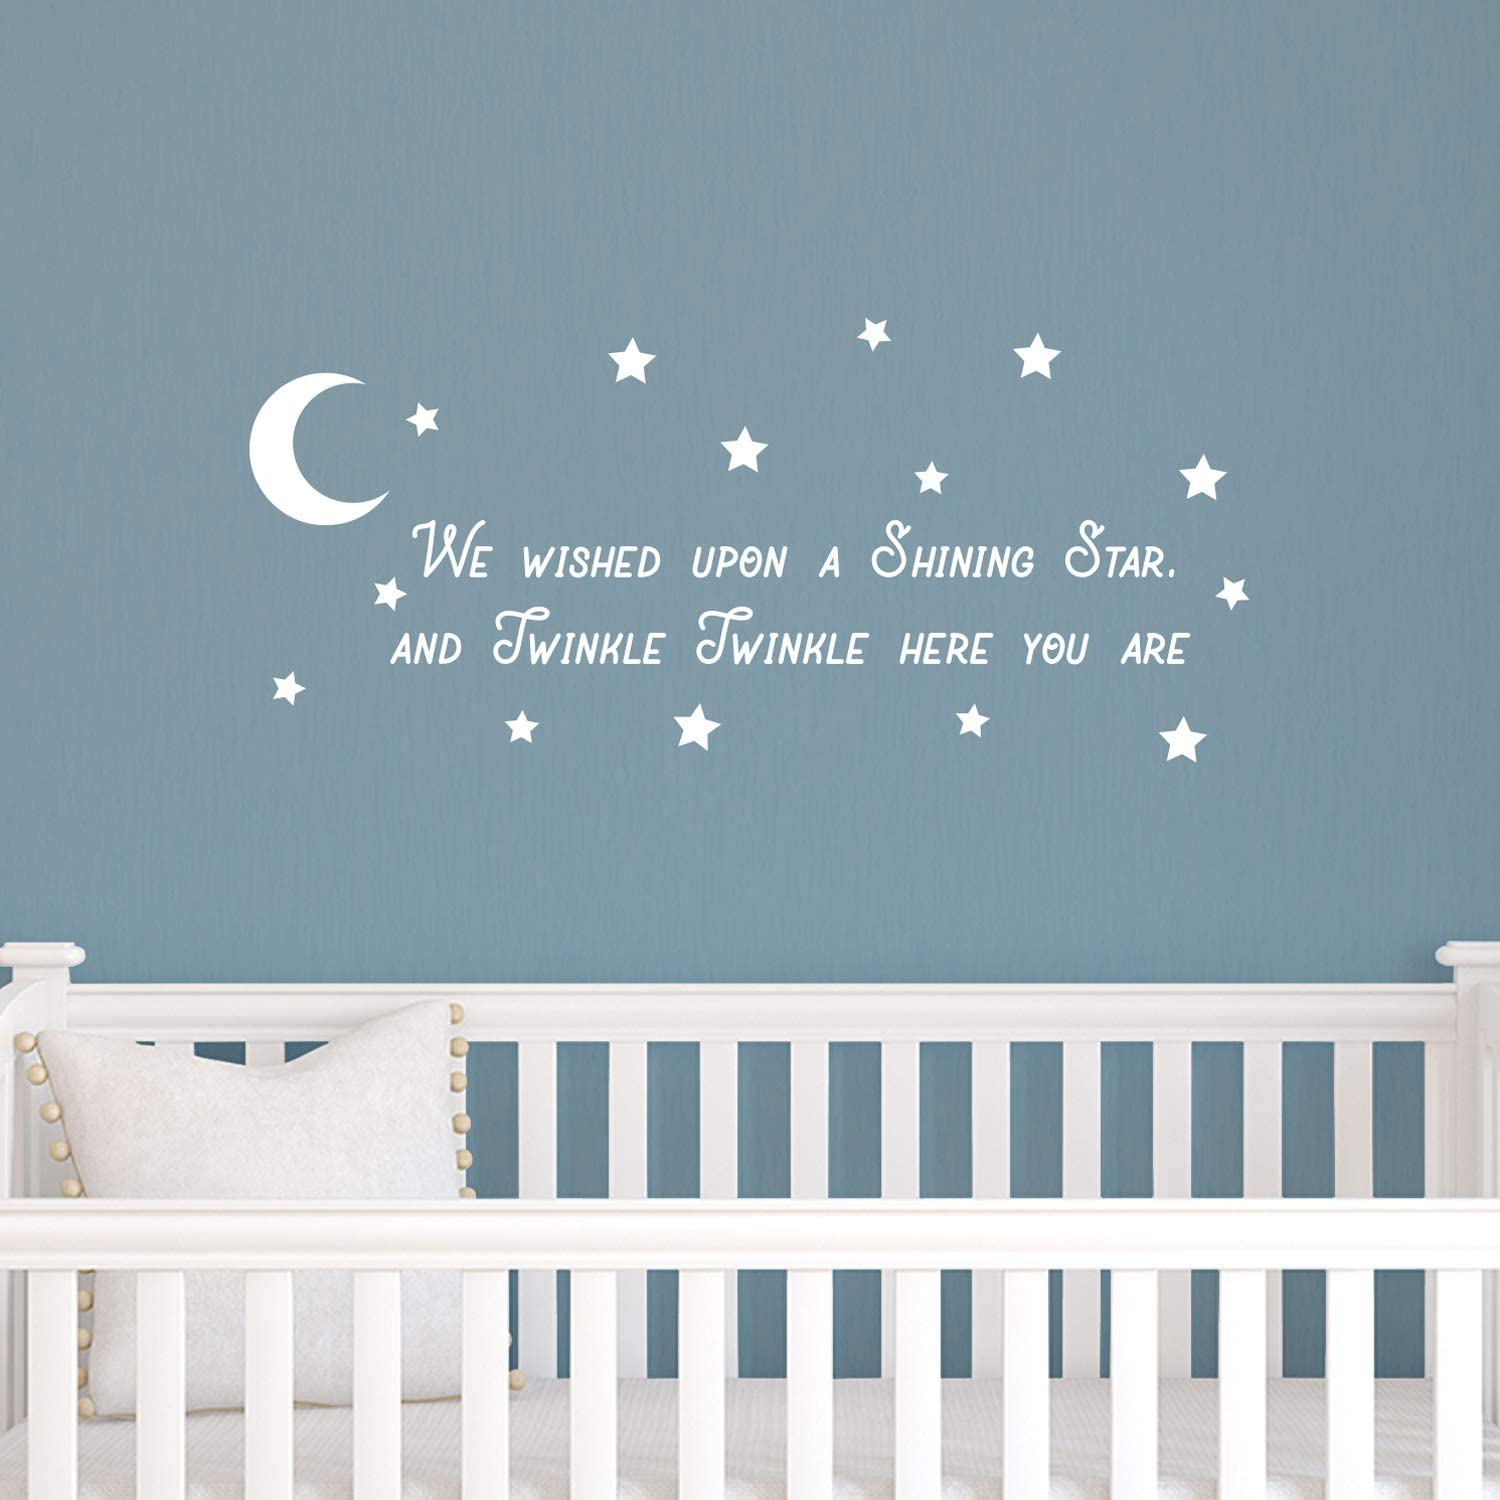 Vinyl Wall Art Decal - We Wished Upon A Shining Star and Twinkle Twinkle Here You are - 11